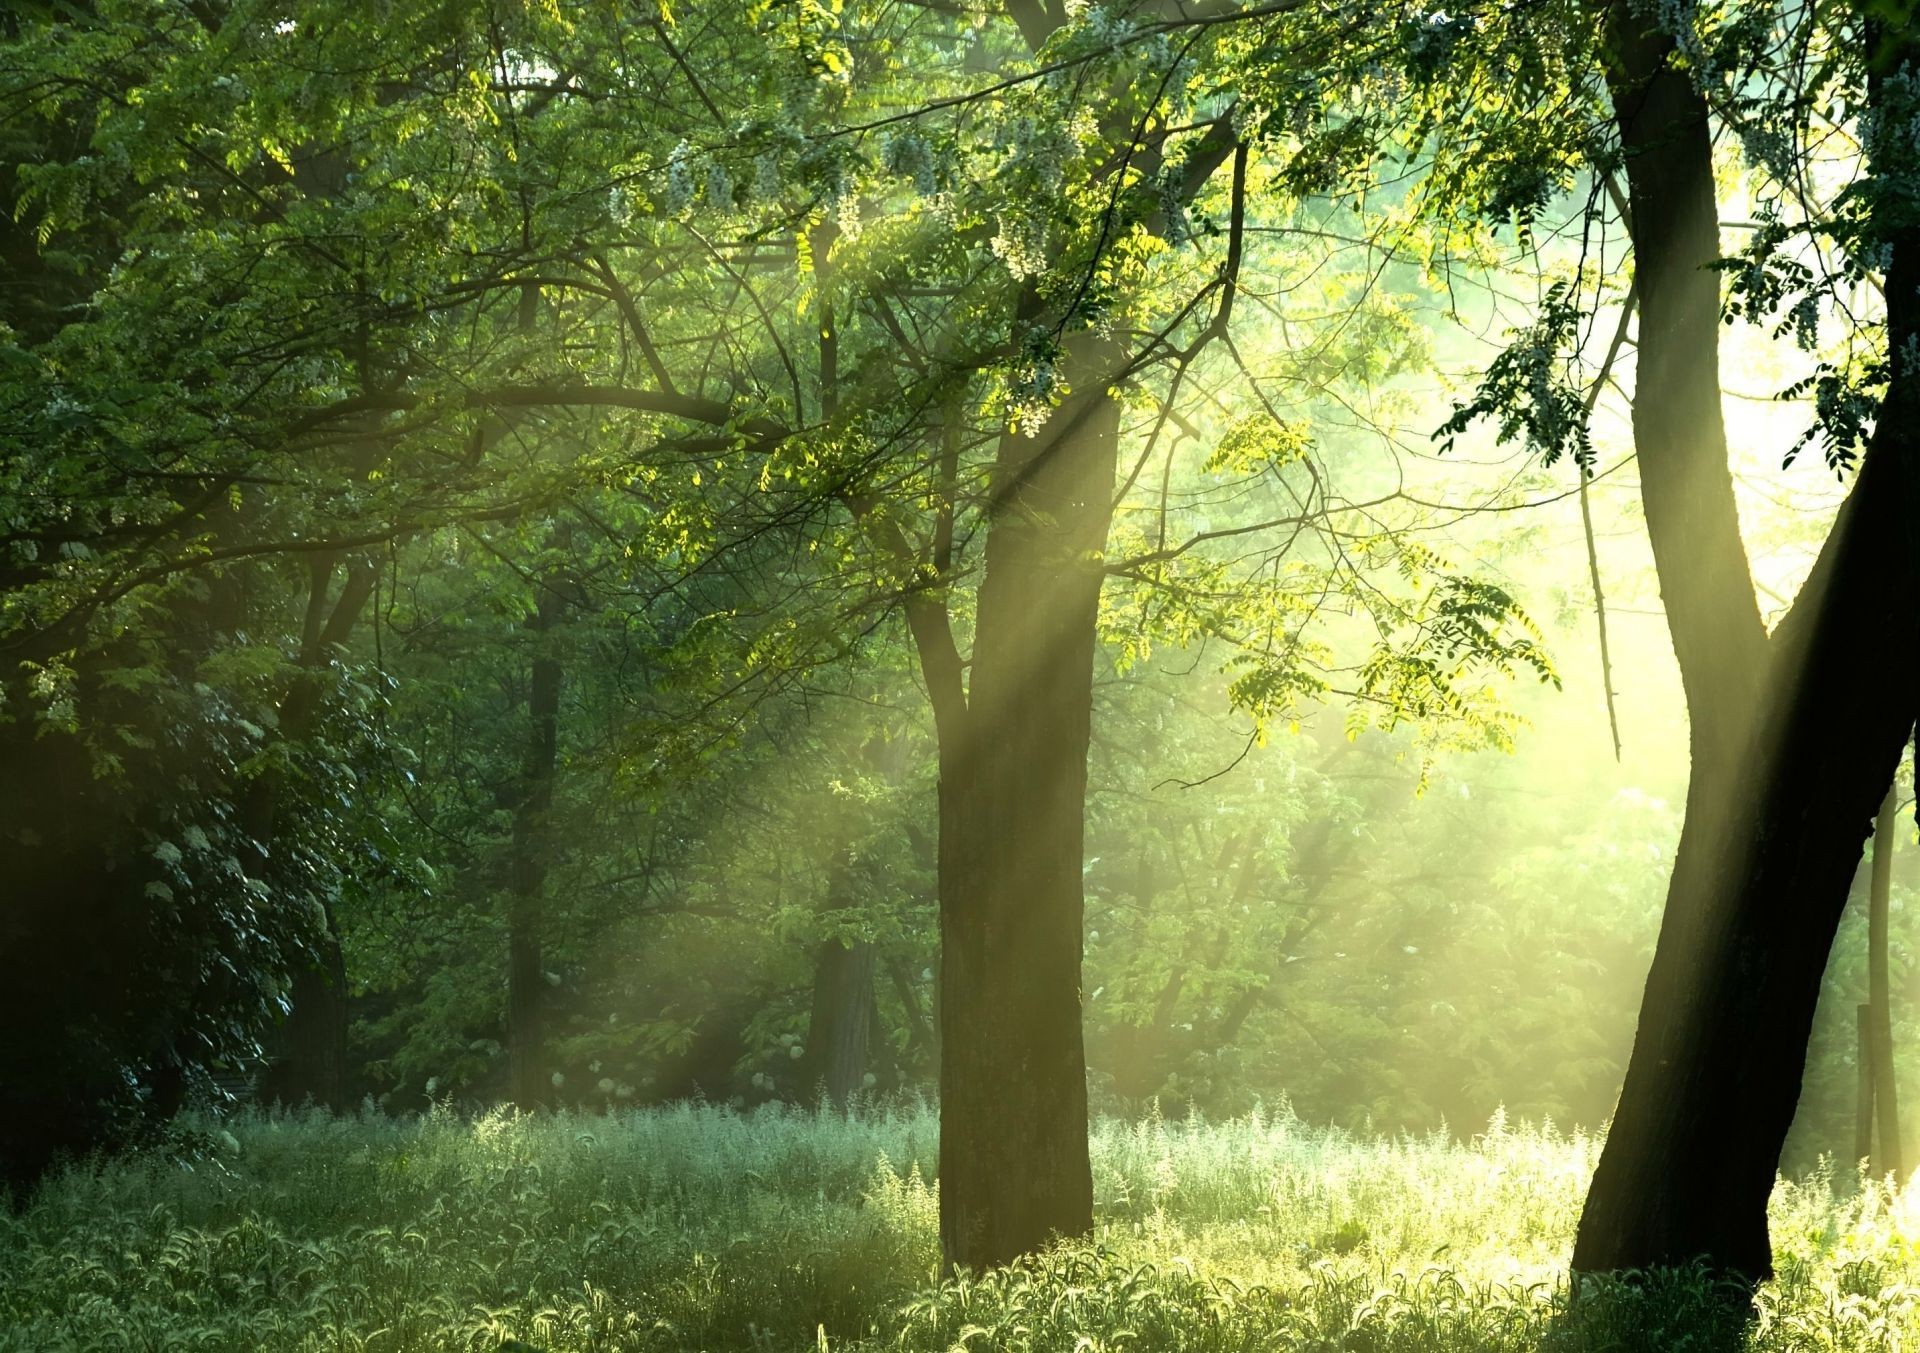 sunshine Green trees nature trees forest sun beam